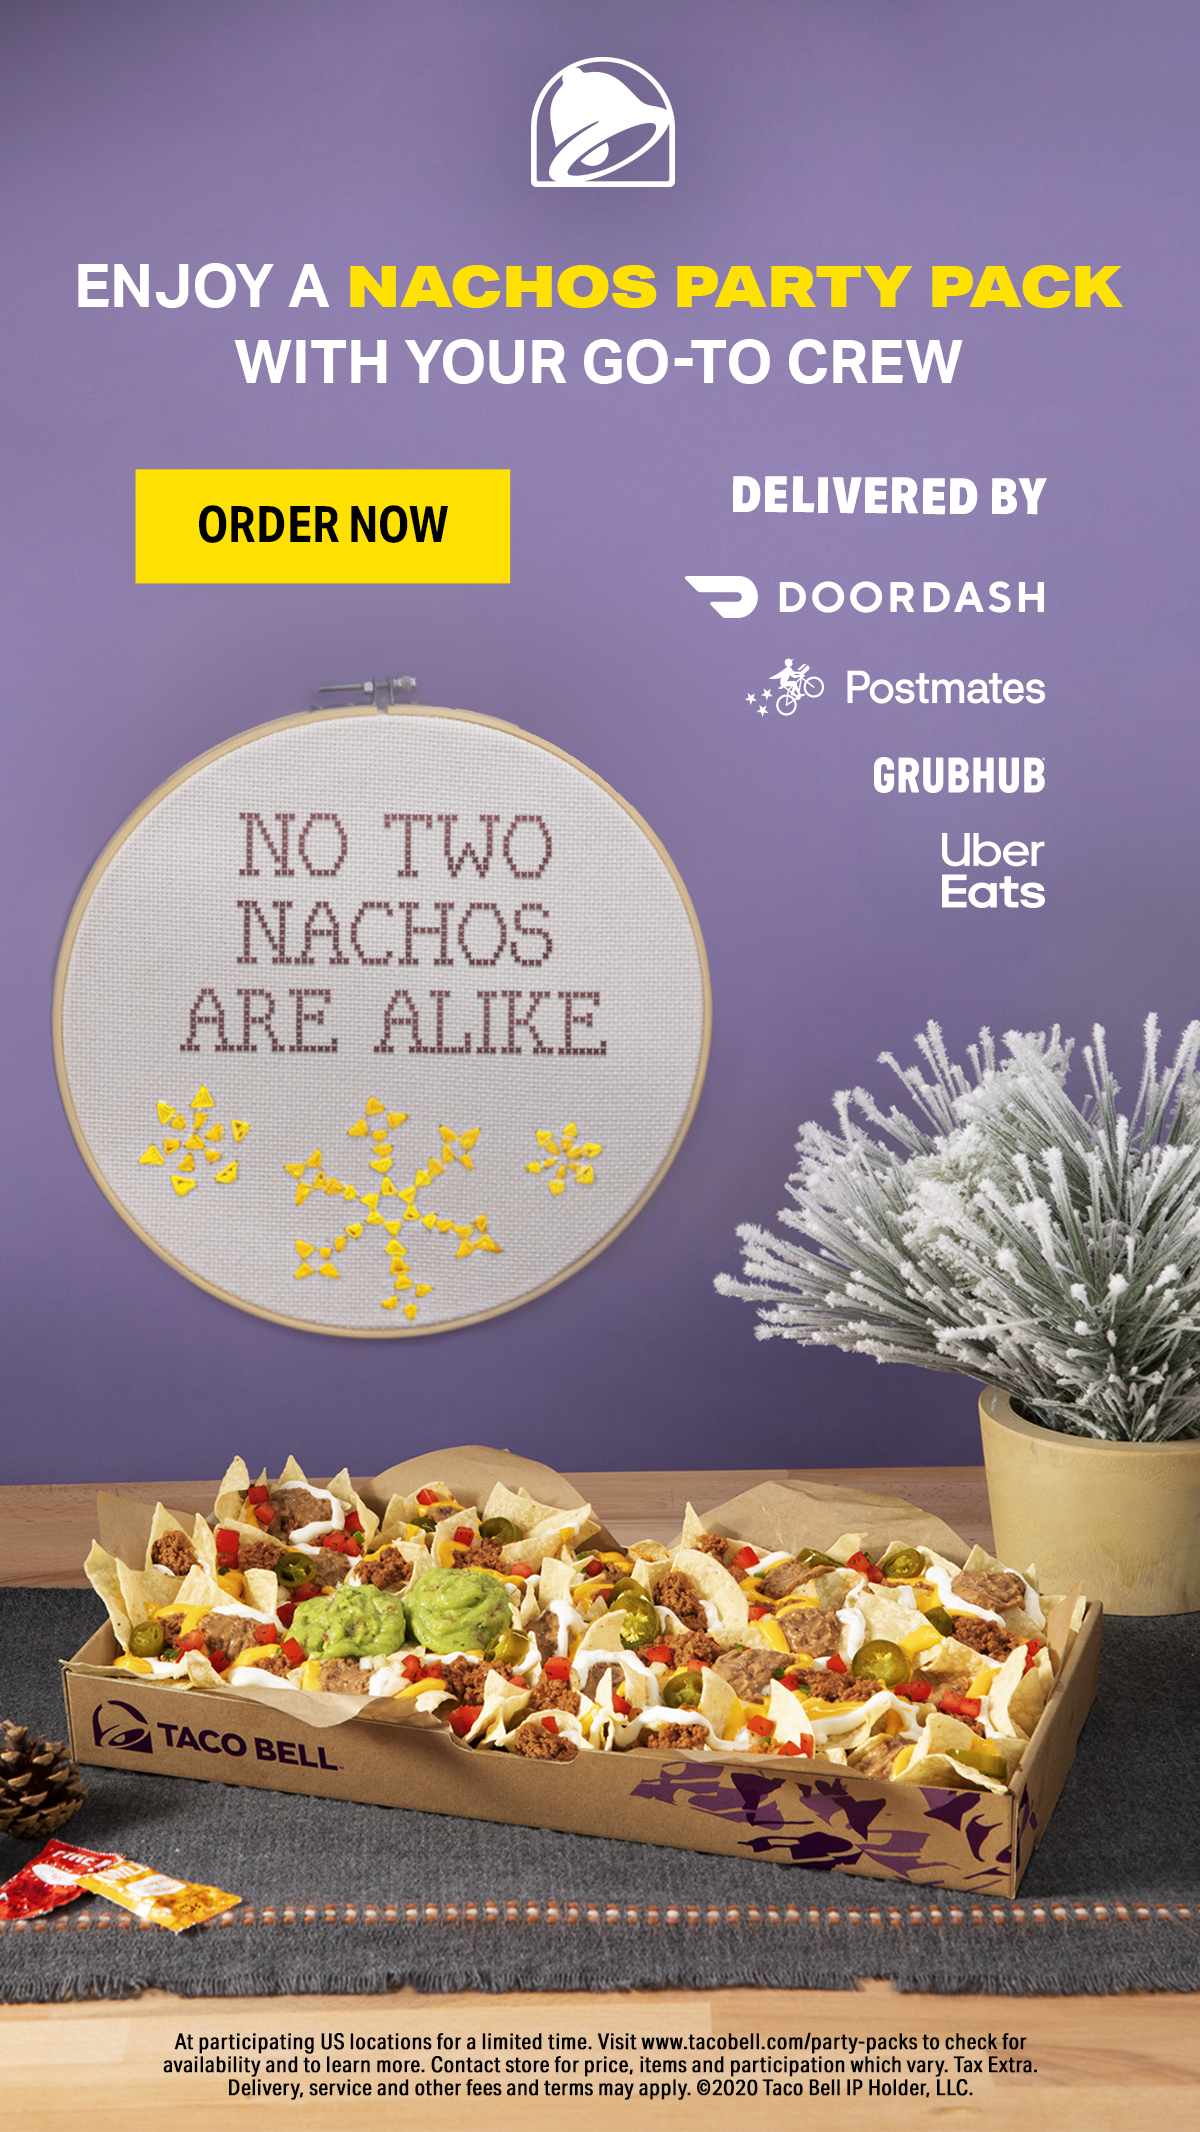 Taco Bell Popular Pays In 2021 Nacho Party Party Packs Taco Bell